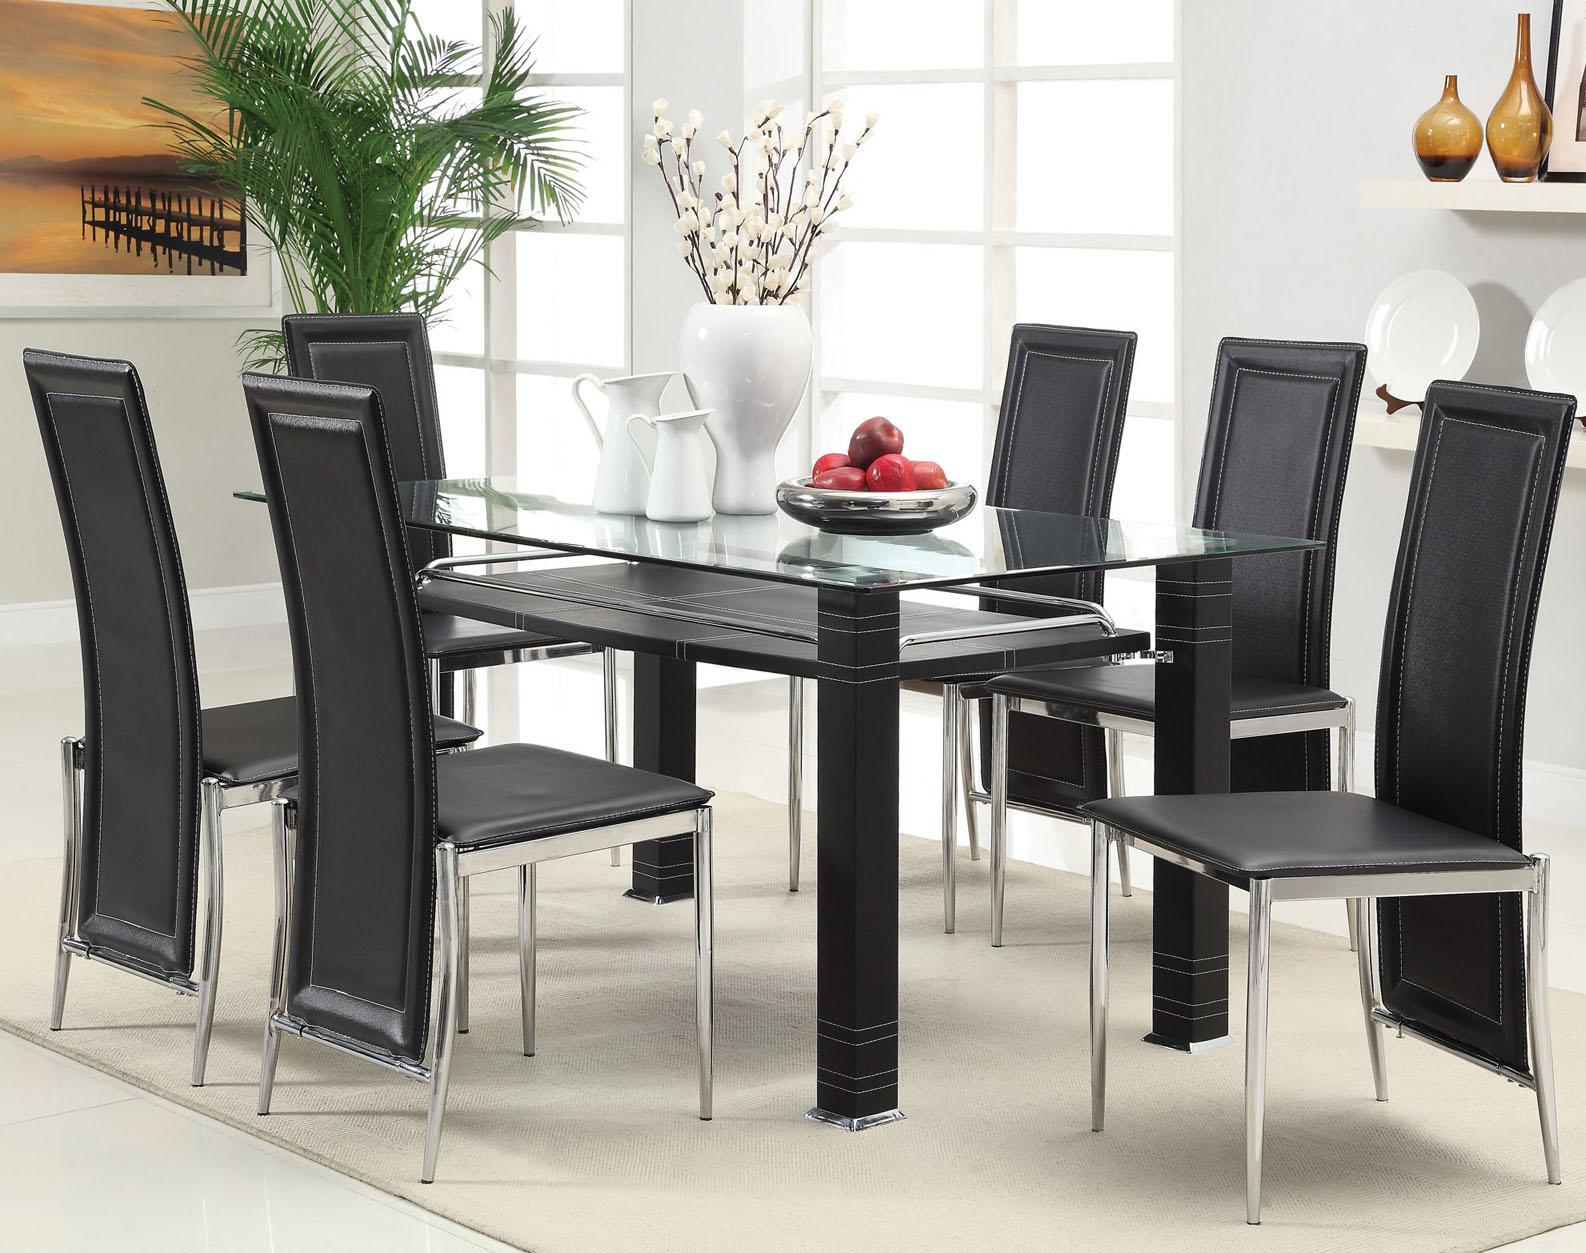 Acme Furniture Riggan Black Leg Table with Black Vinyl Chairs Set - Item Number: 60208+6X60211